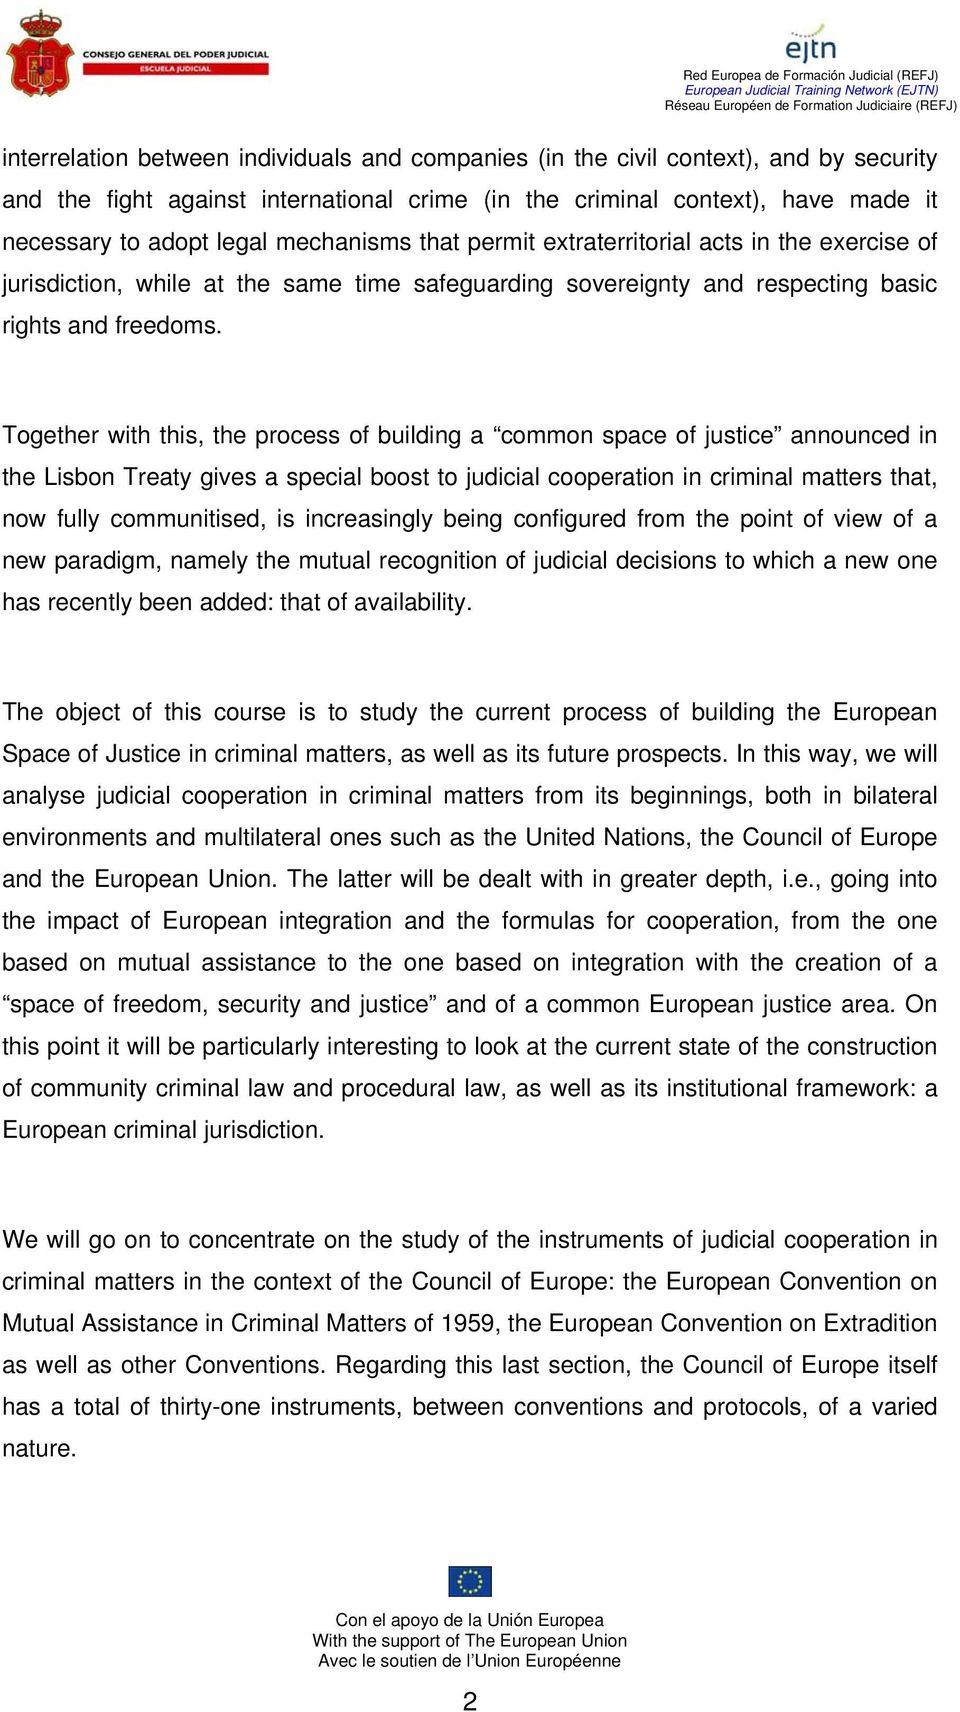 Together with this, the process of building a common space of justice announced in the Lisbon Treaty gives a special boost to judicial cooperation in criminal matters that, now fully communitised, is